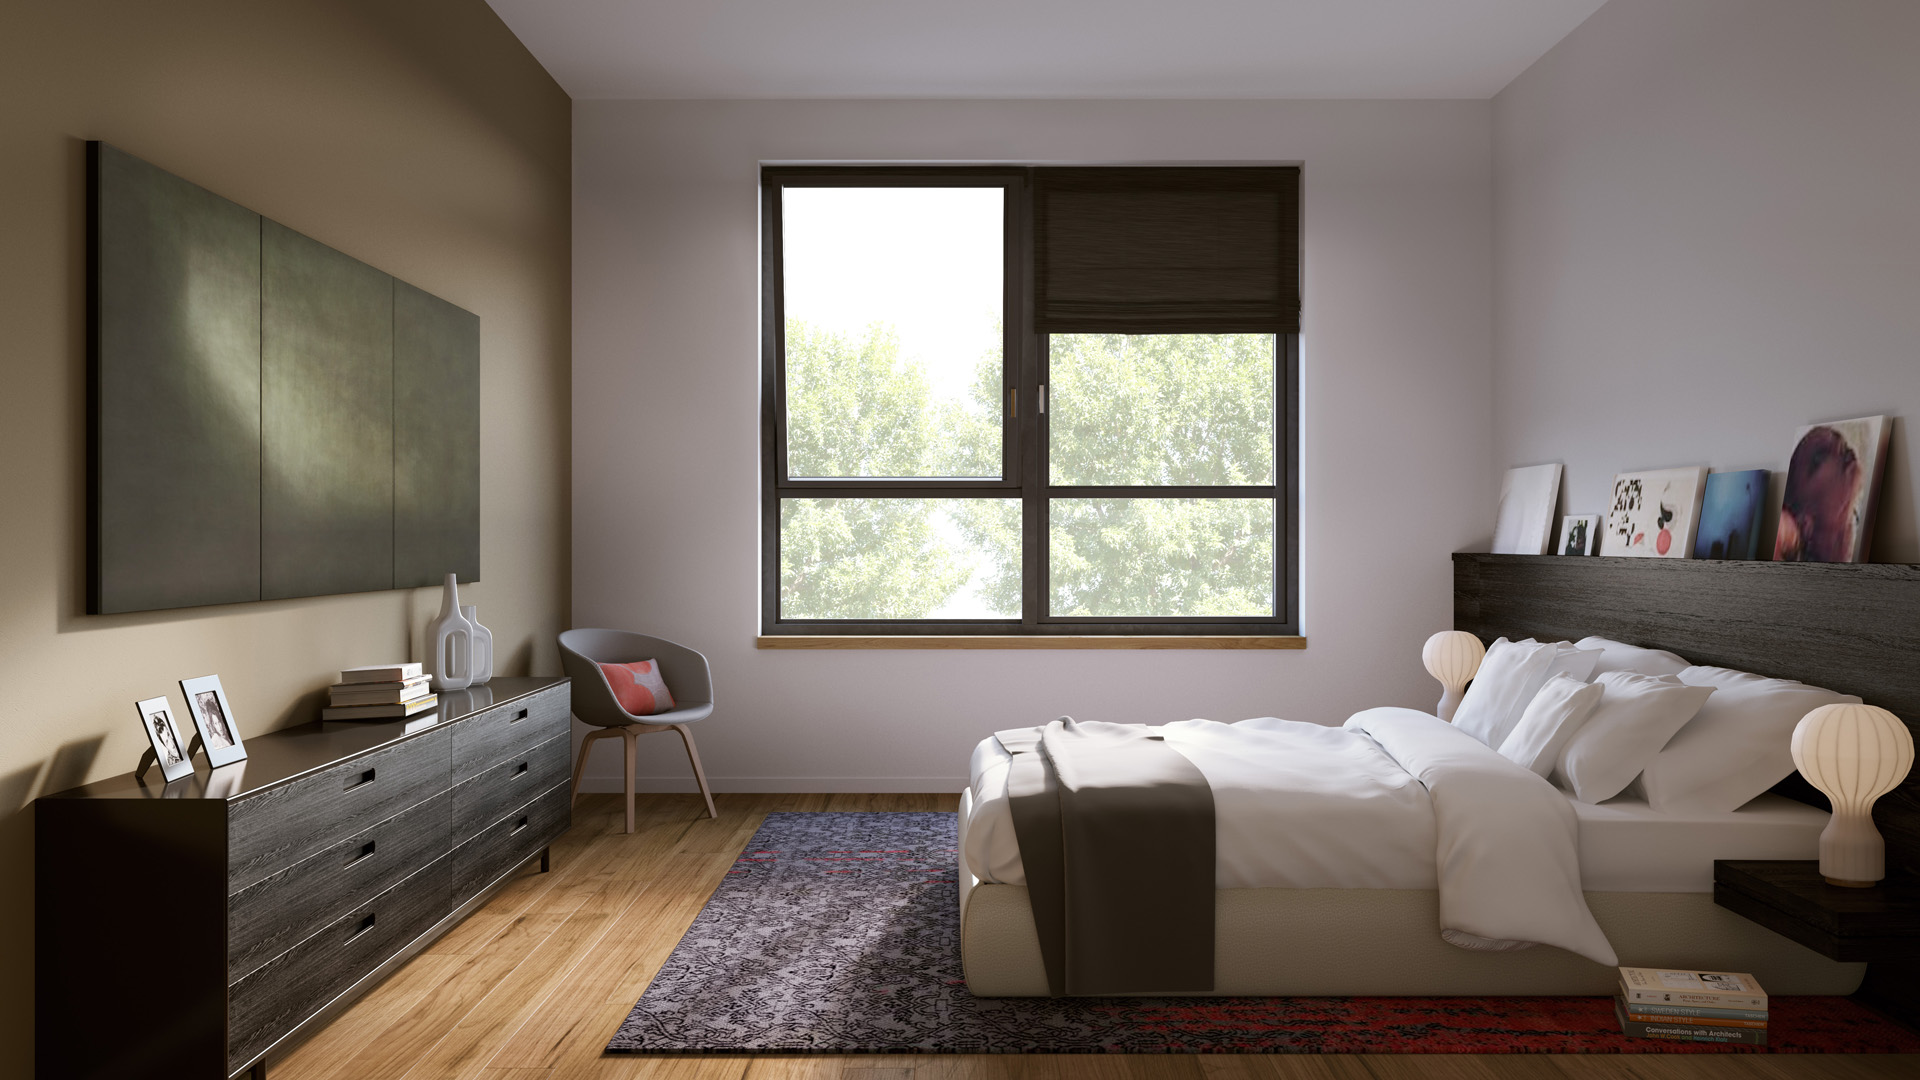 A Space_bedroom_2_architectural_visual_by_xoio